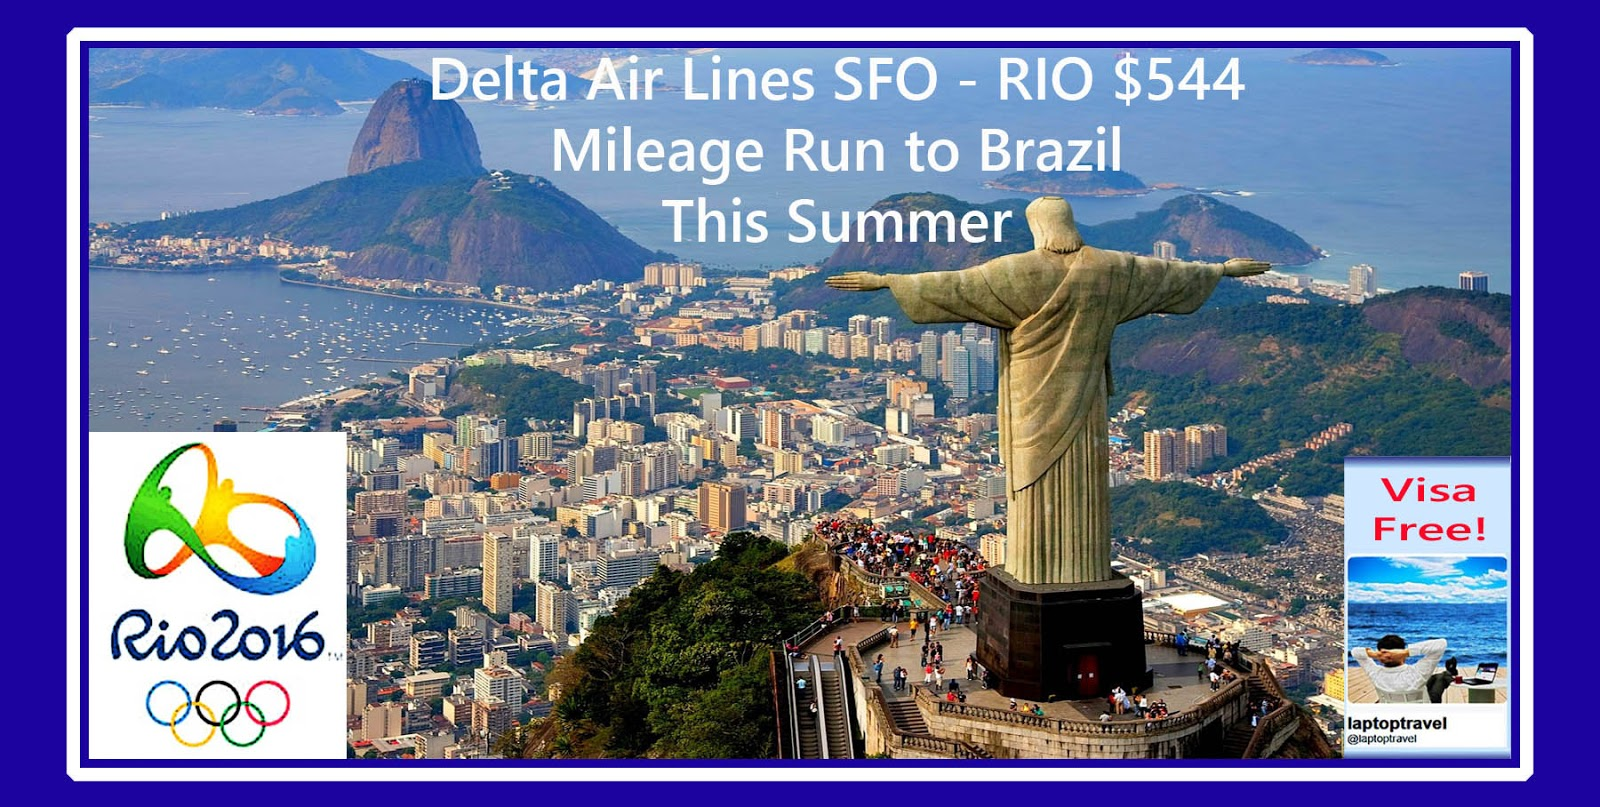 San Francisco To Rio De Janeiro Brazil Visa Free Mega. Chat Software Download Pain In Bottom Of Back. Care Rehabilitation Center Price Of Fiat 500l. Remove Water Stains From Furniture. Is Nicotine A Carcinogen All Electric Company. Nursing Programs In Memphis What Is Nutrient. Adoption Profile Design Security House System. Dallas Back Pain Management Cell Phone Jam. How To Make An Email Signature In Outlook